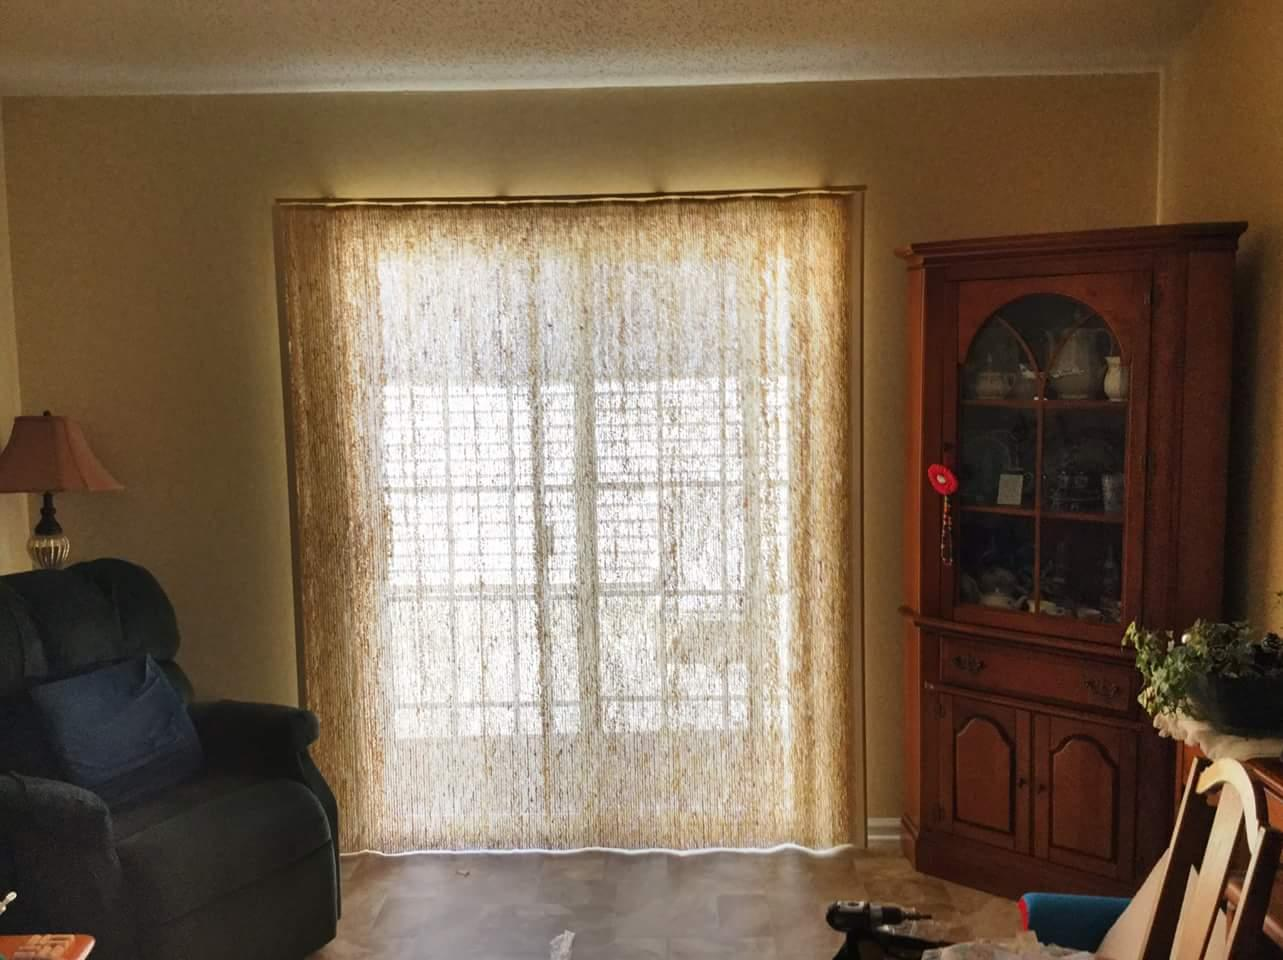 giddings personals Two bedroom property for rent in giddings, tx on oodle classifieds join millions of people using oodle to find unique apartment listings, houses for rent, condo listings, rooms for rent, and roommates.